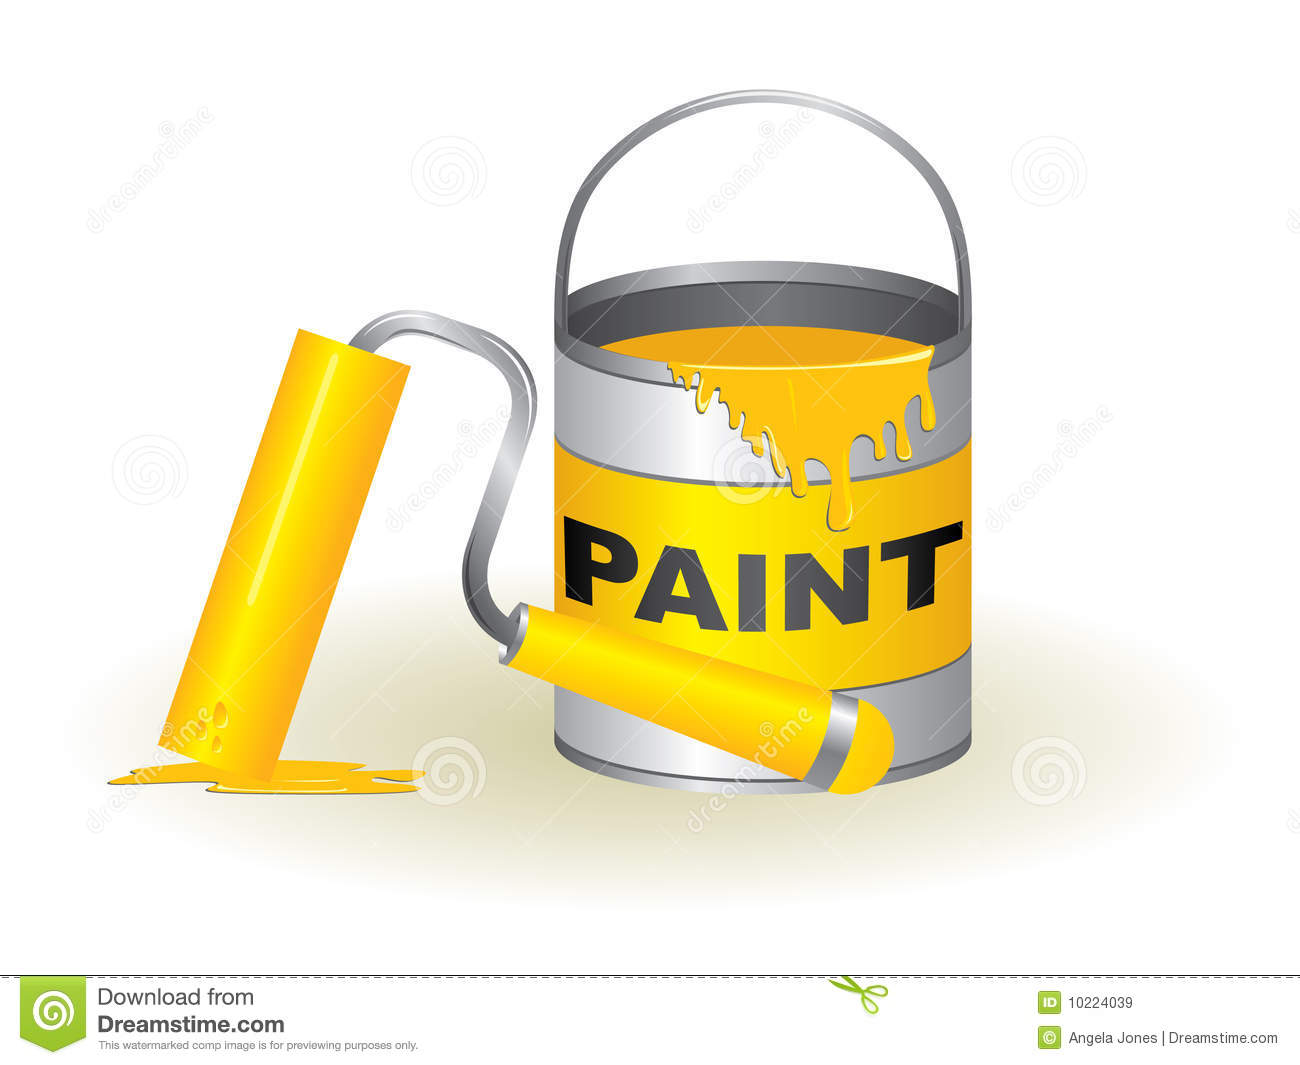 Paint Pot And Brush Image